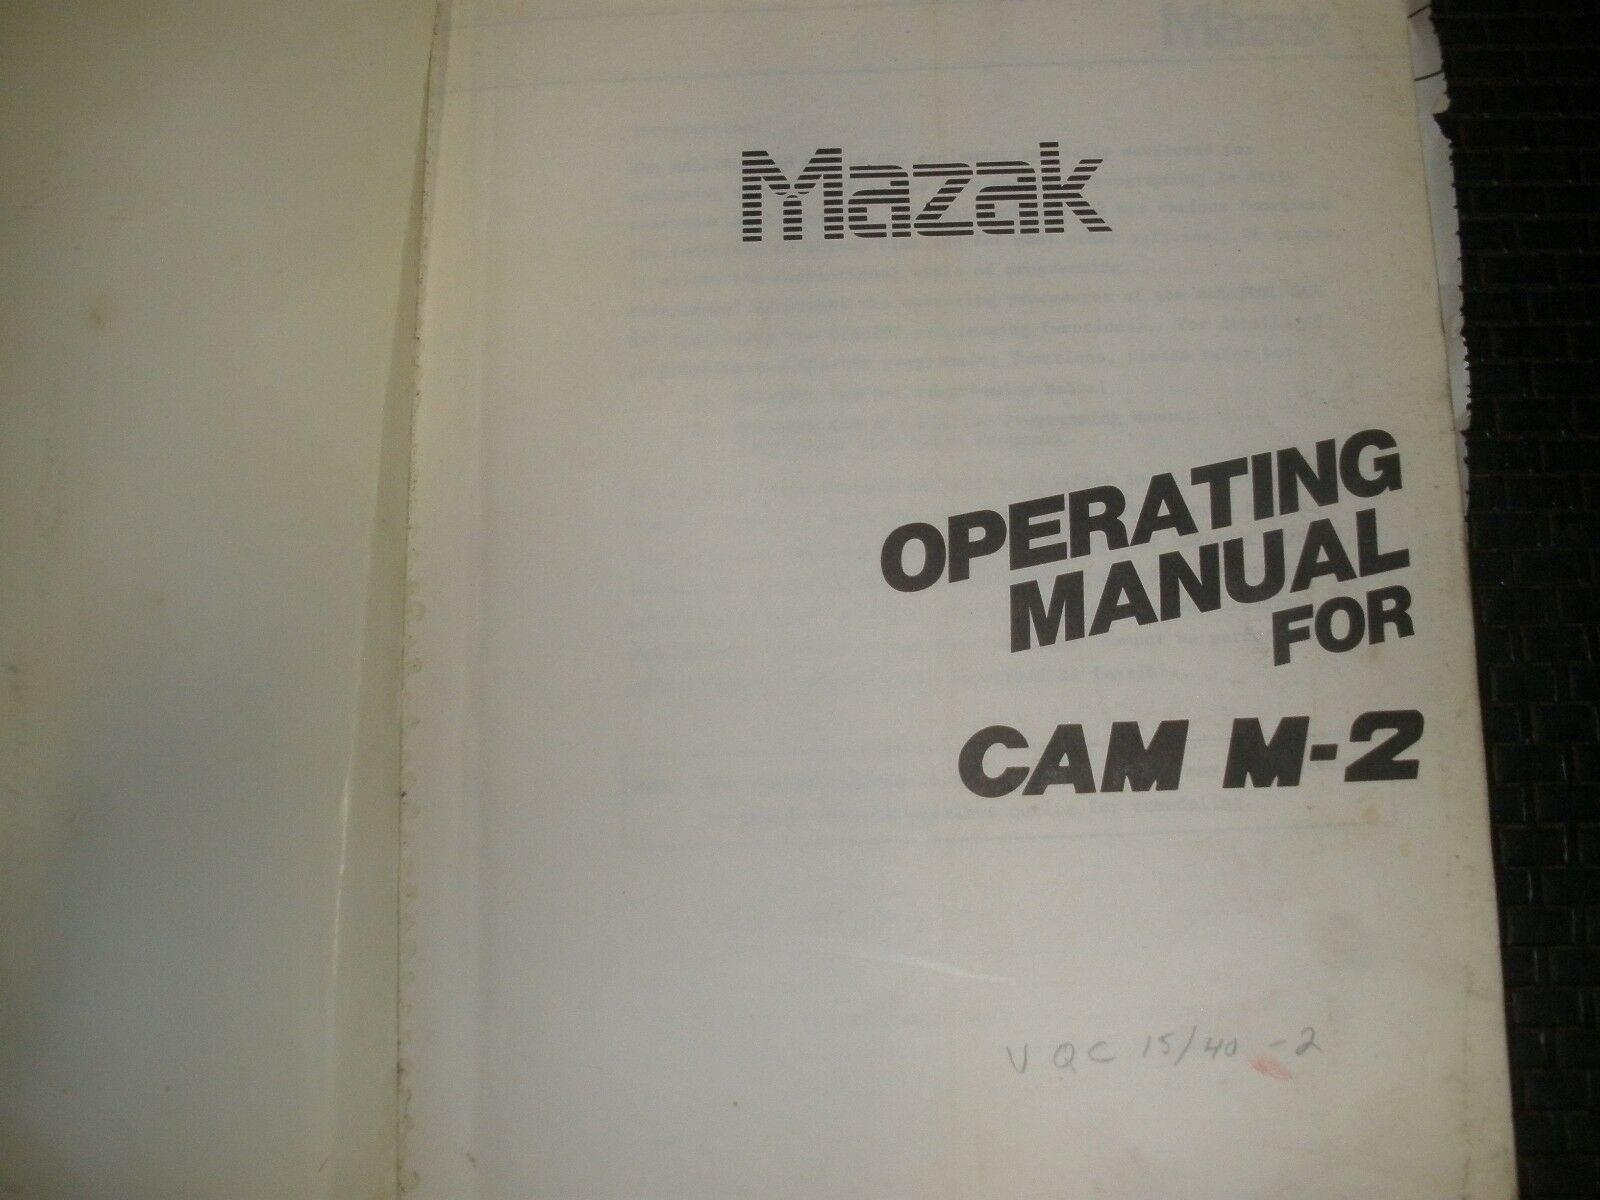 Mazak Operating Manual for CAM M-2 1 of 1Only 1 available ...